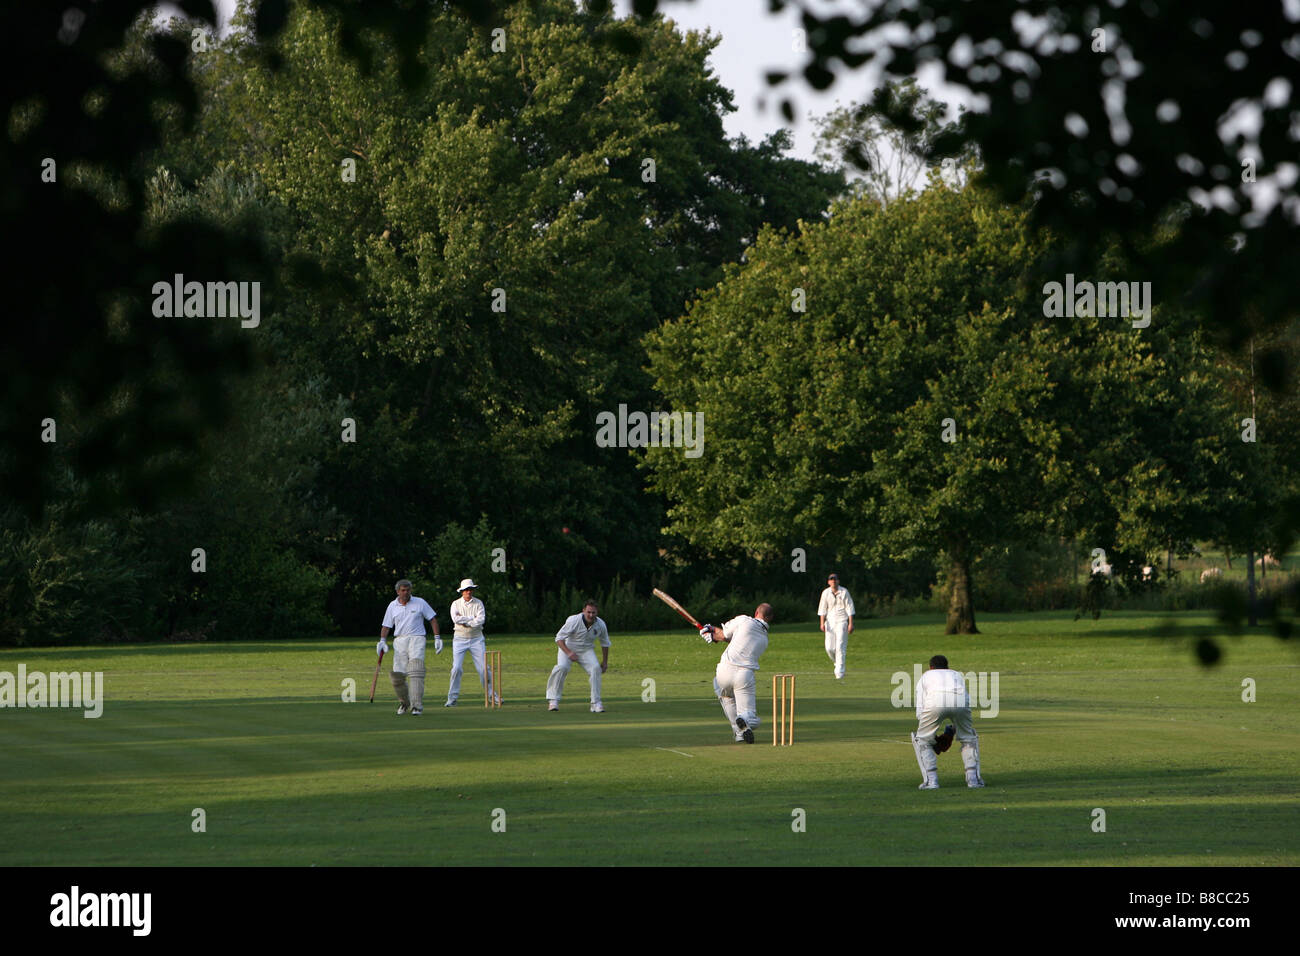 A Cricket Match being played in the English Countryside. - Stock Image